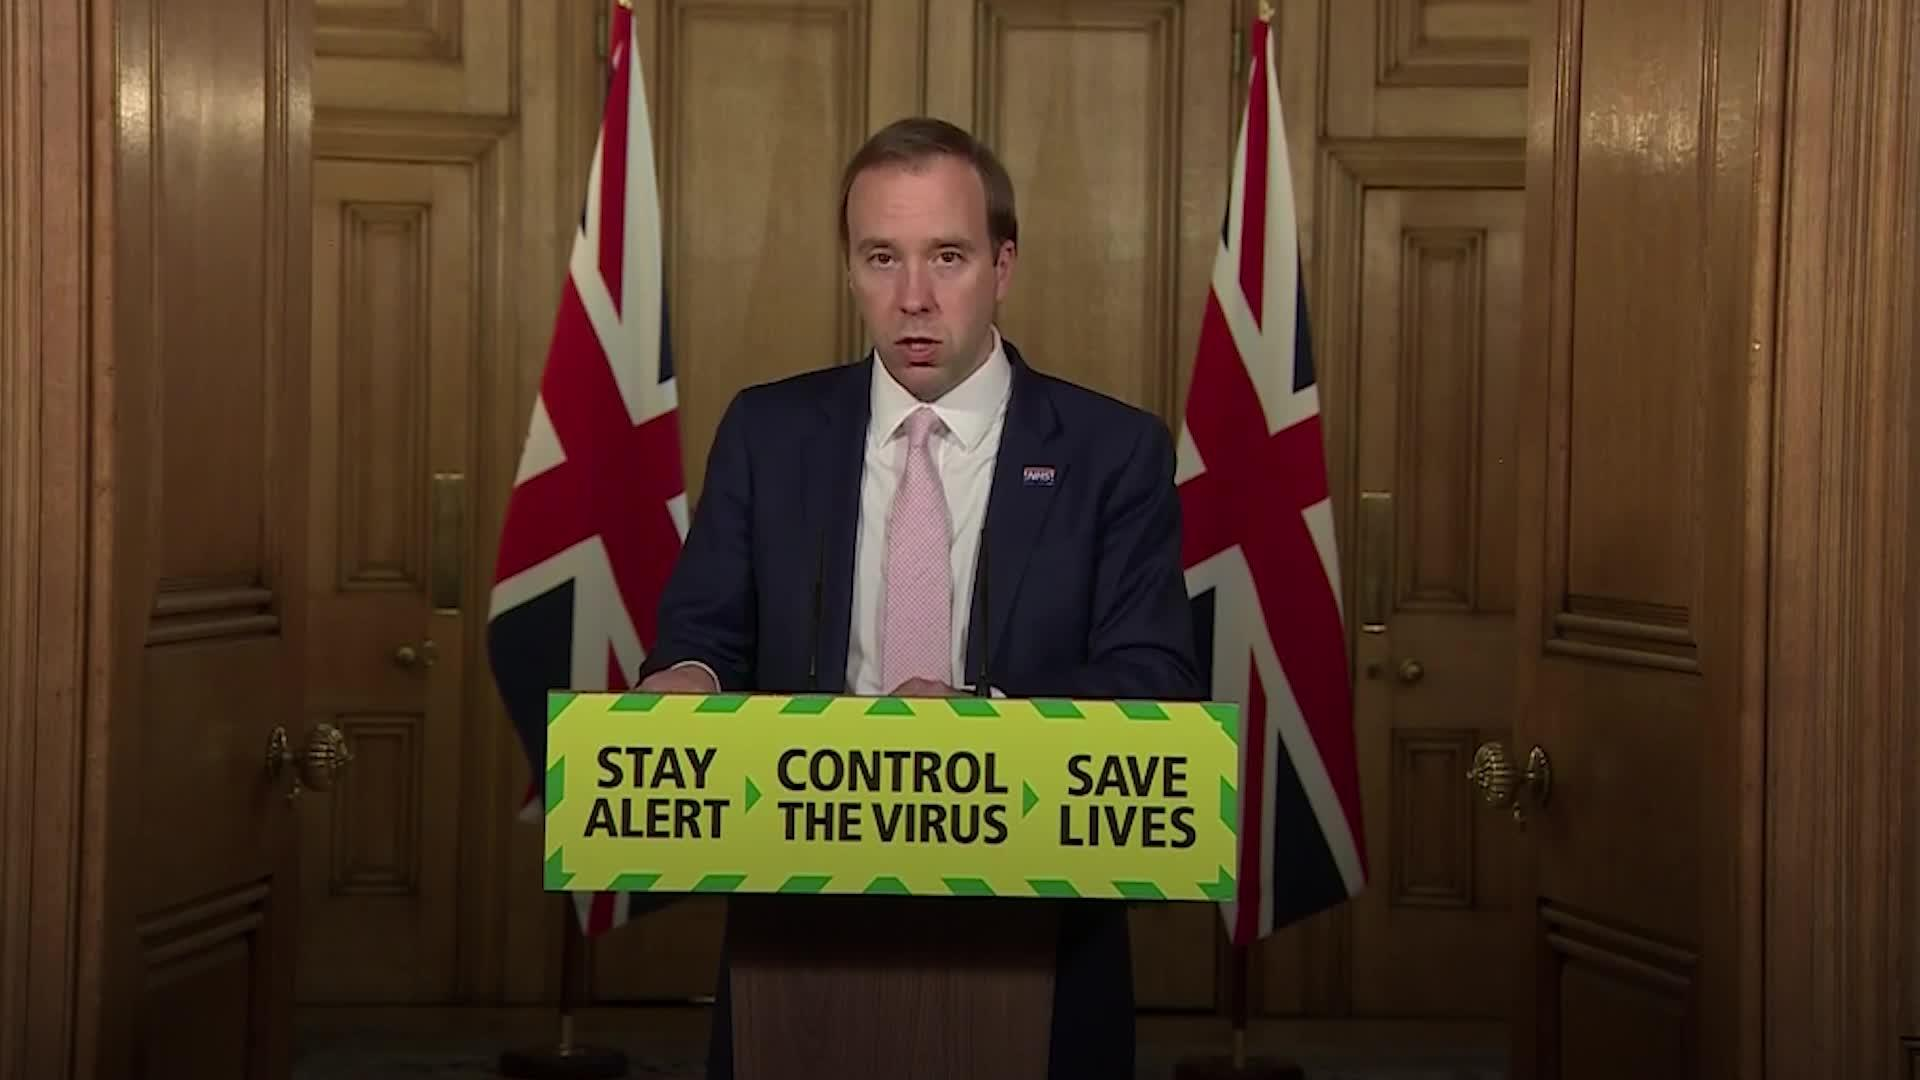 All you need to know from the June 18 coronavirus briefing